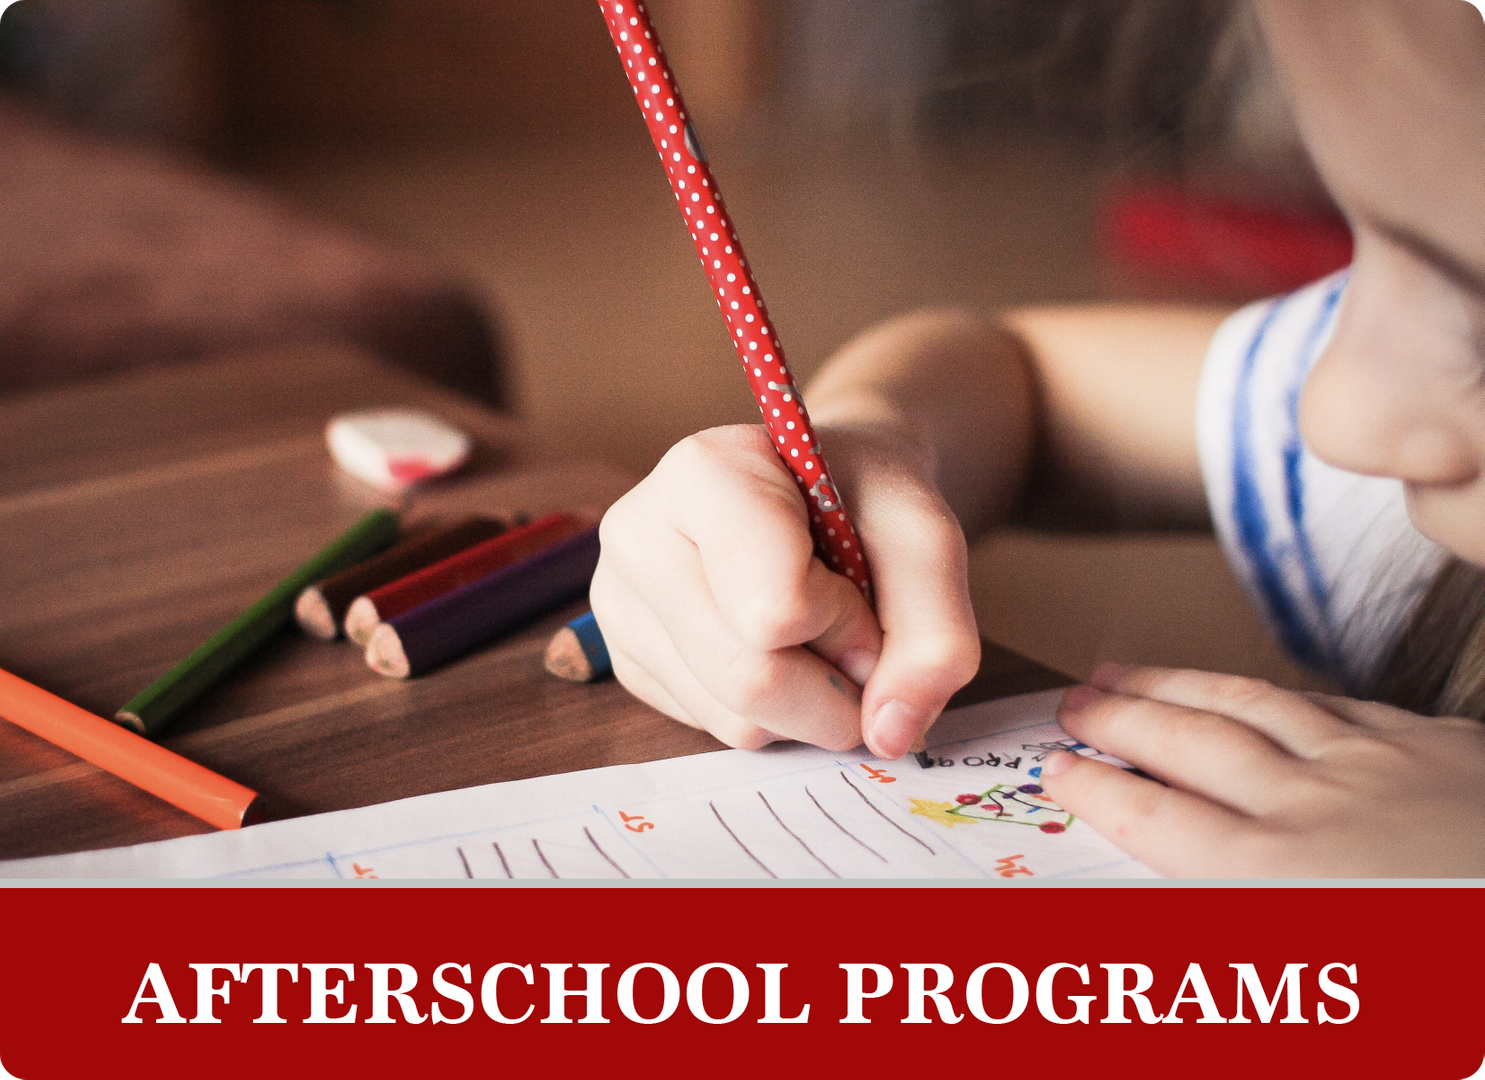 Afterschool programs: girl coloring